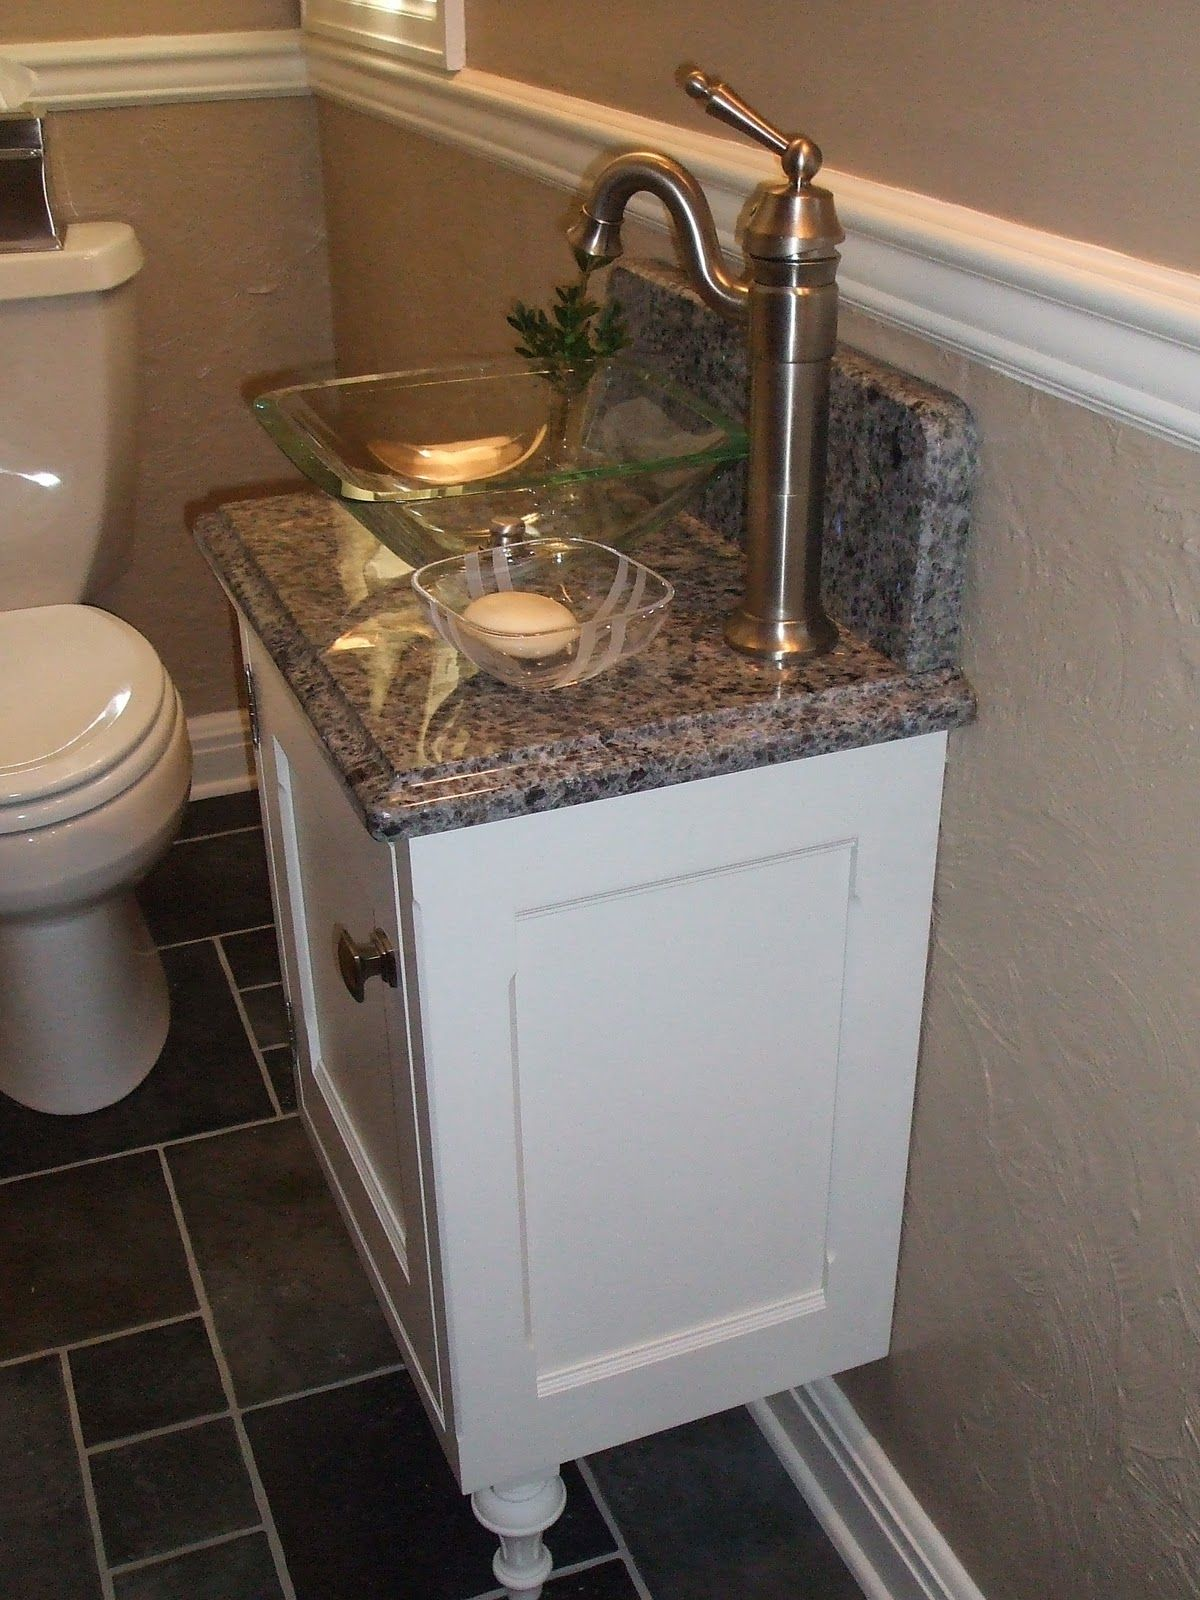 Bathroom Sinks Glass Bowls luxurious white small vanity and glass bowl sink on gray marble